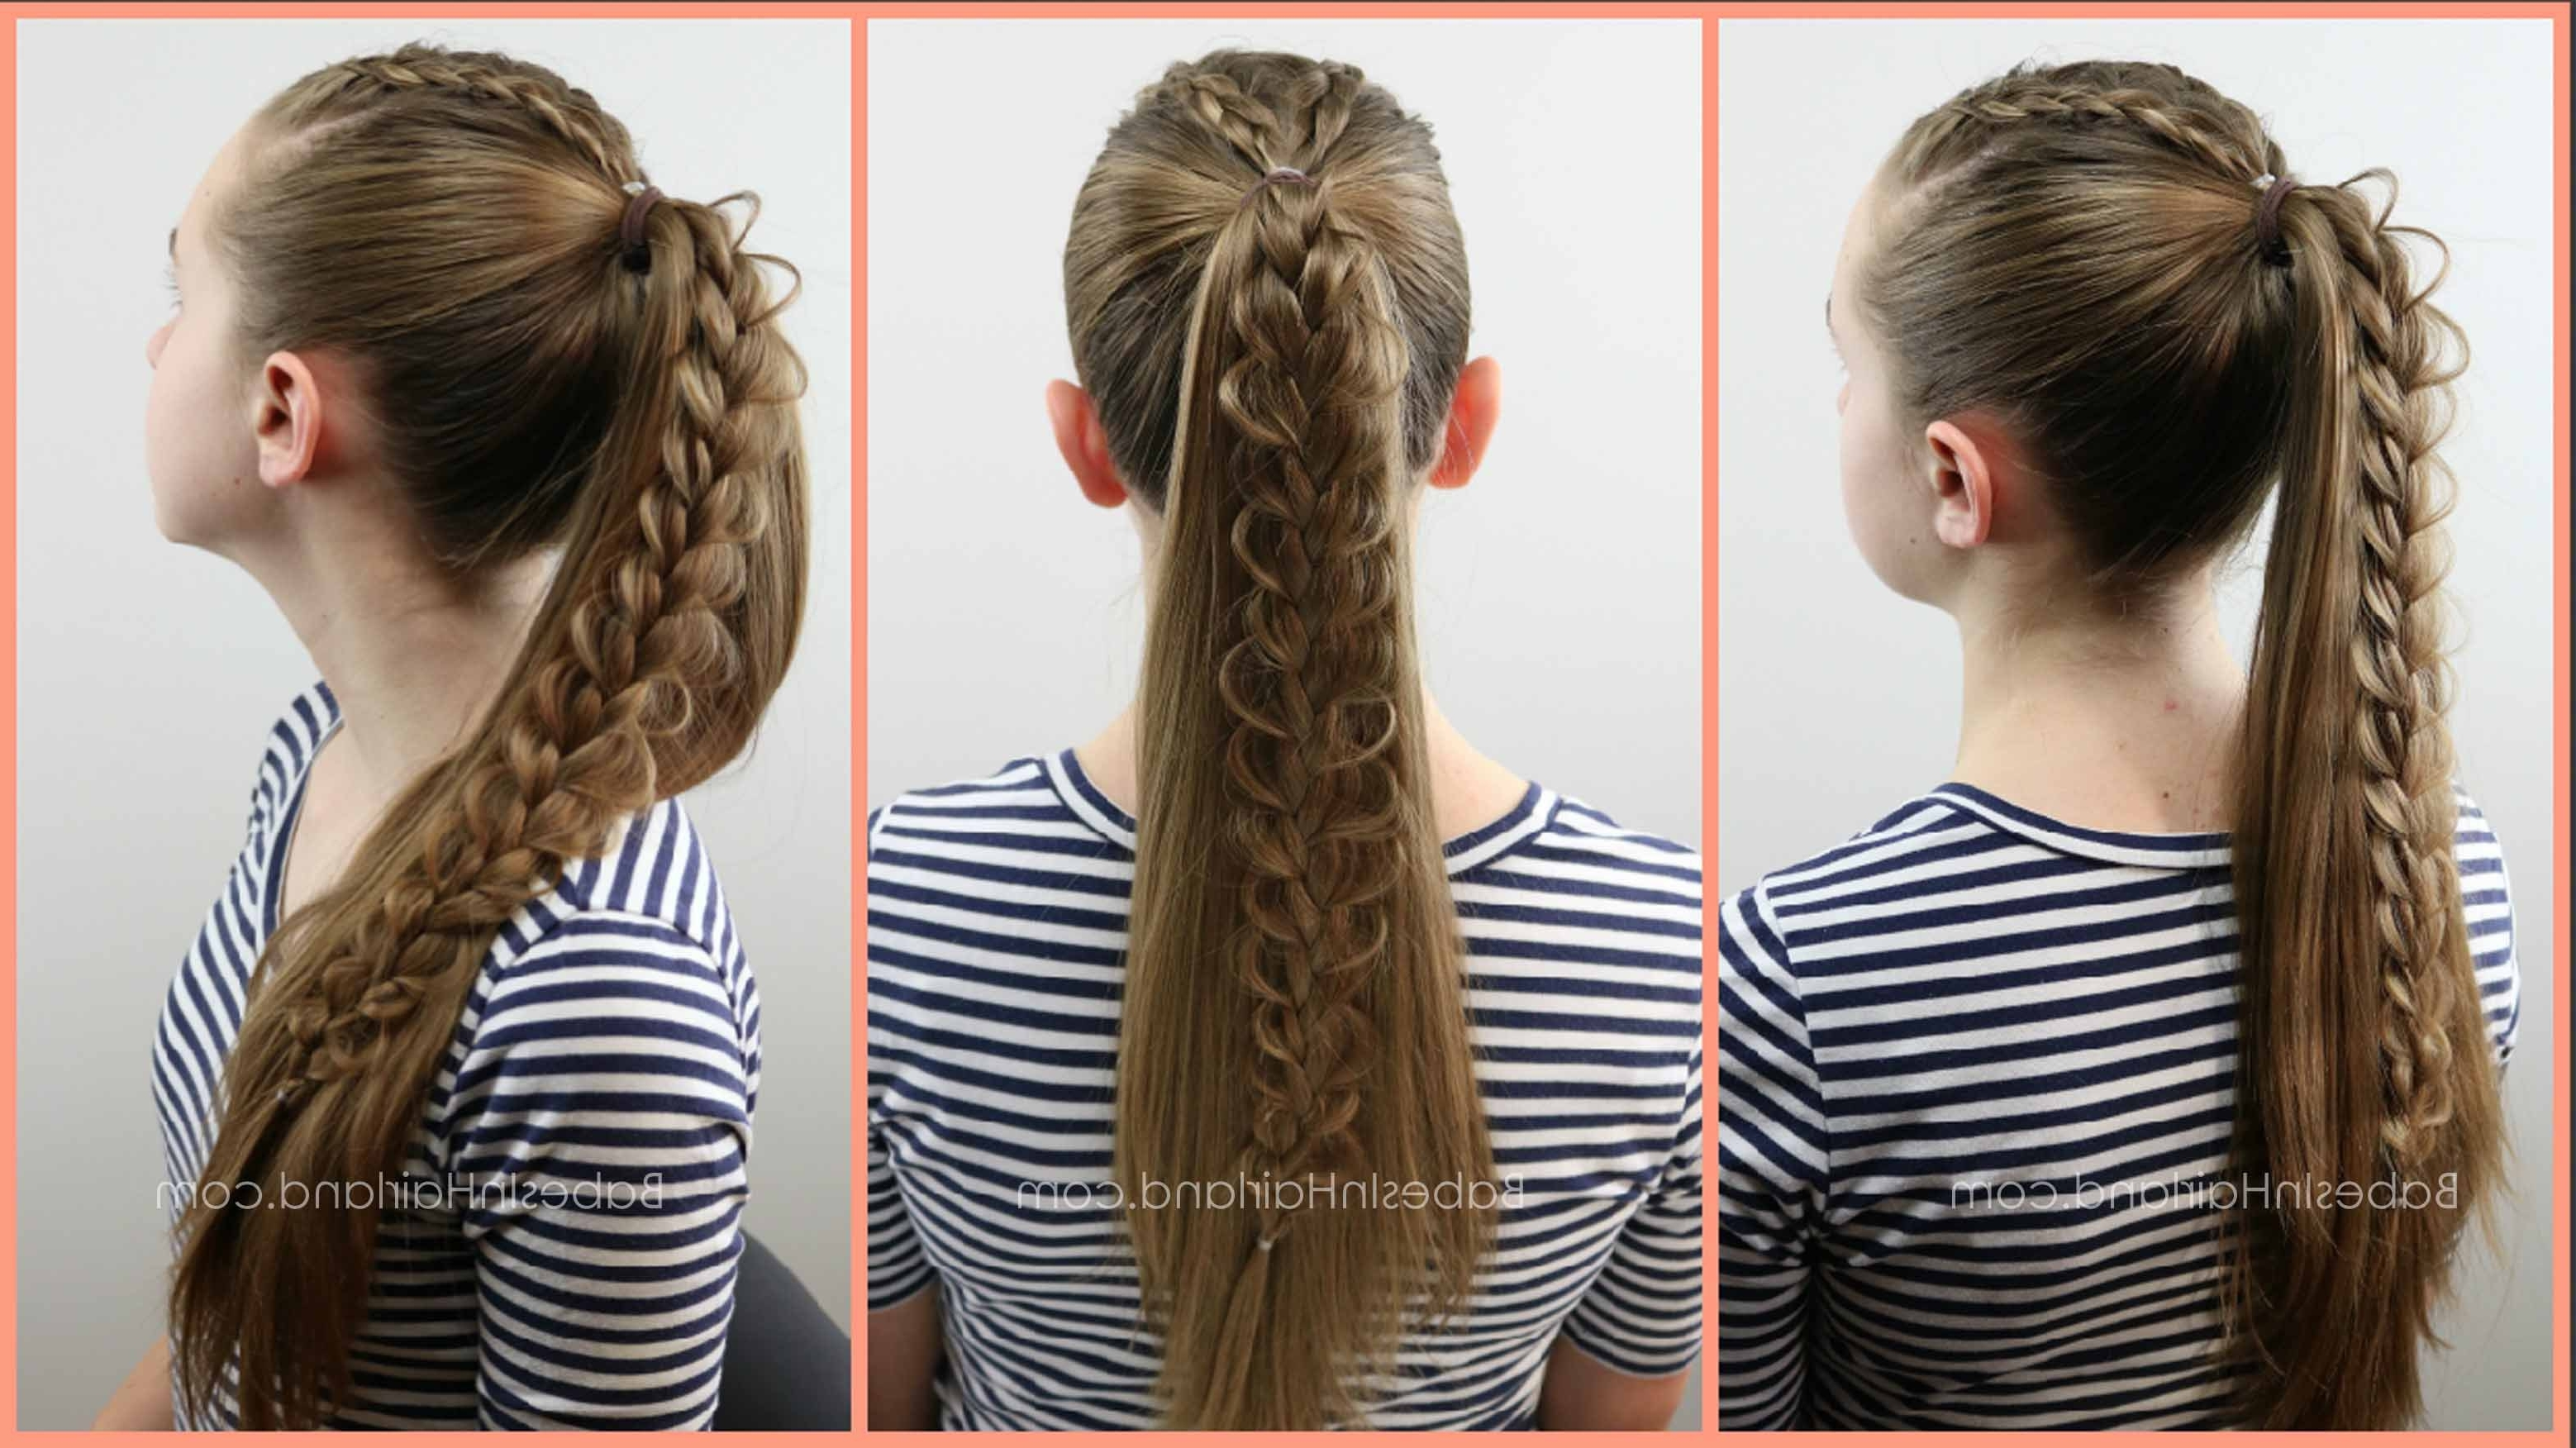 2 Dutch Braids 5 Different Hairstyles (View 12 of 20)